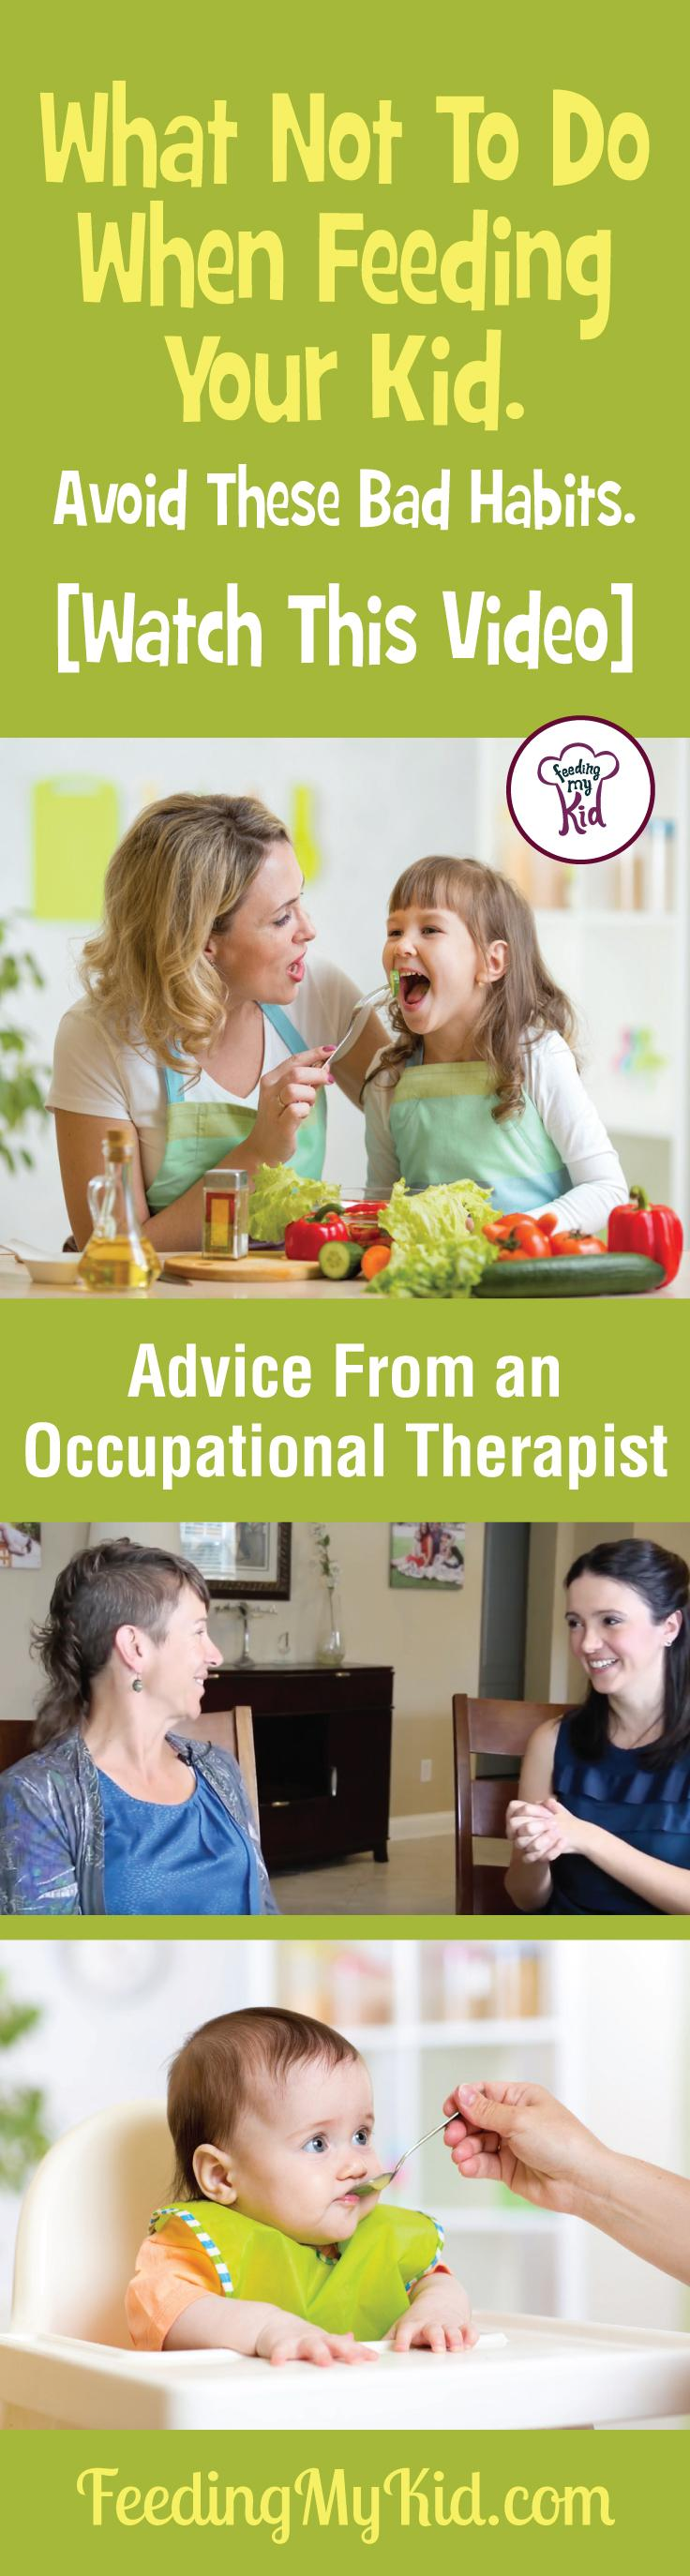 This is a must share. Finding that feeding your children is very stressful? Check out this interview with an occupational therapist to help out. Feeding My Kid is a filled with all the information you need about how to raise your kids, from healthy tips to nutritious recipes. #FeedingMyKid #OccupationalTherapist #advice #kidshealth